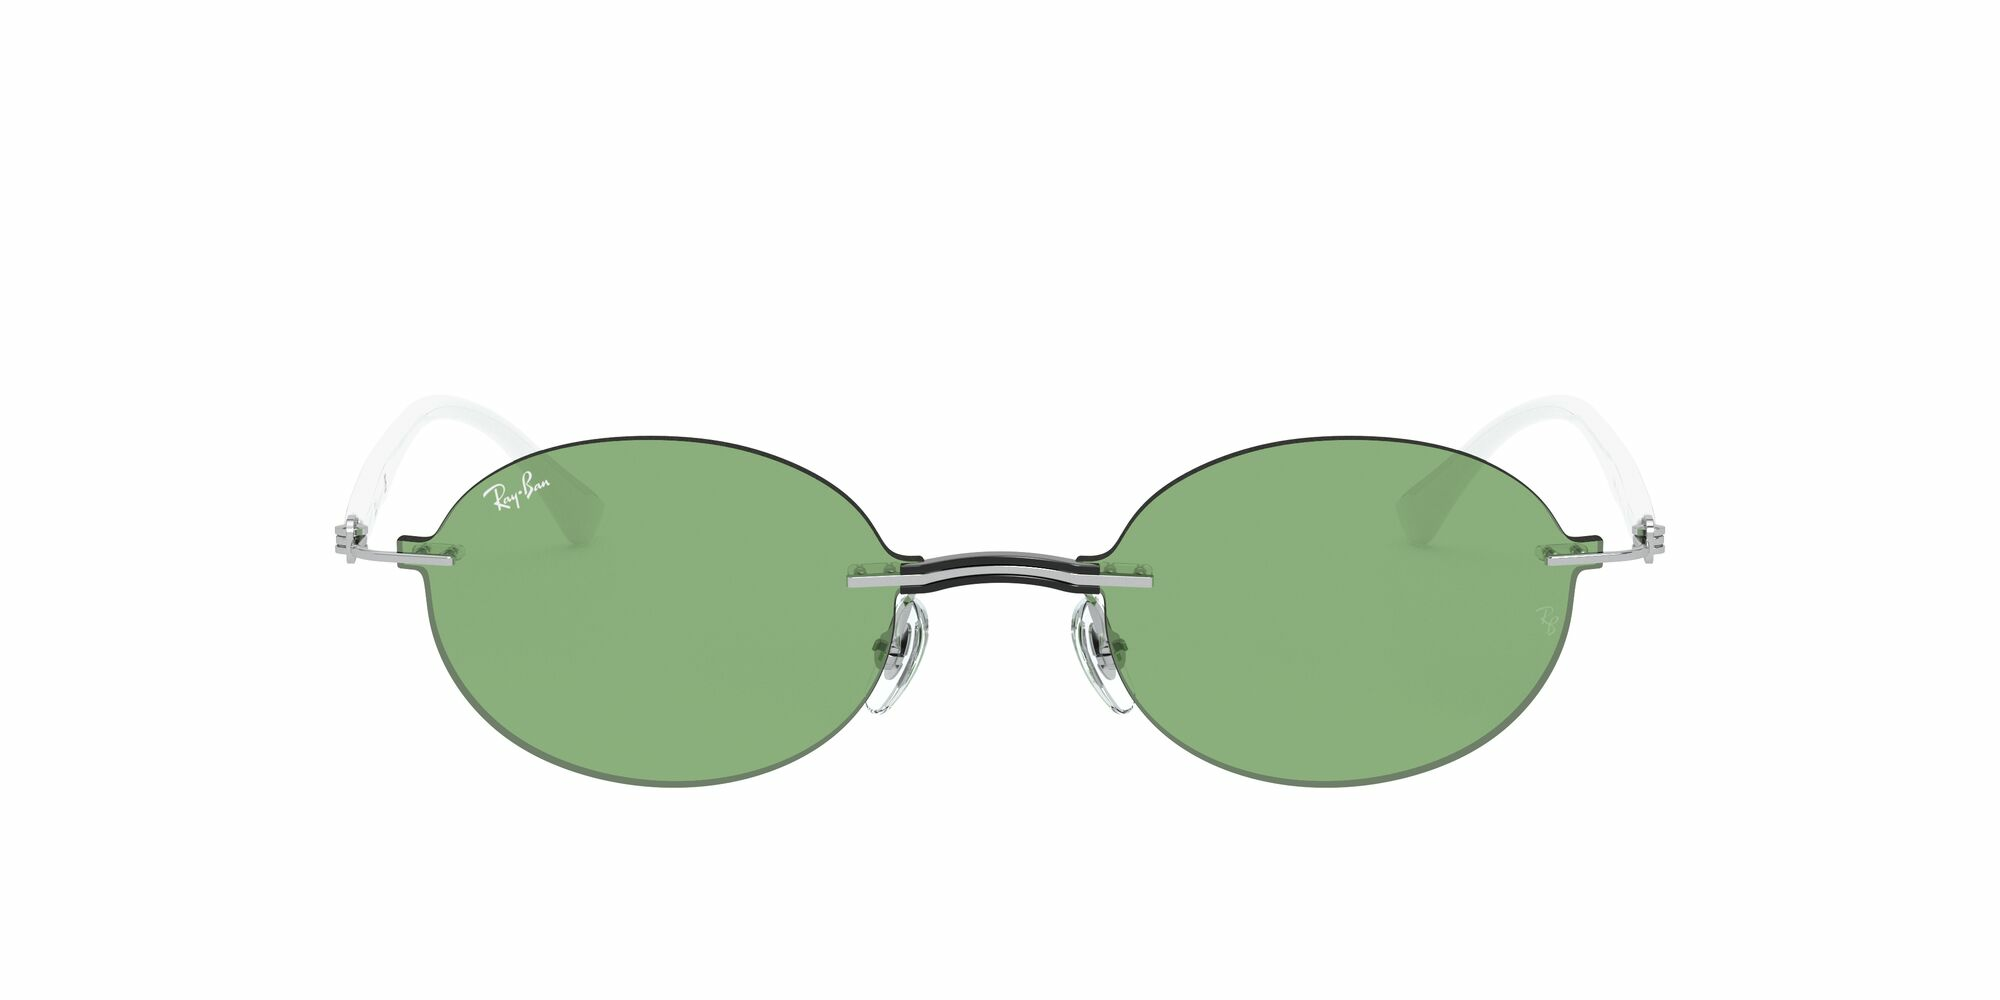 Front Ray-Ban Ray-Ban 0RB8060 003/2 54/15 Transparant, Zilver/Groen